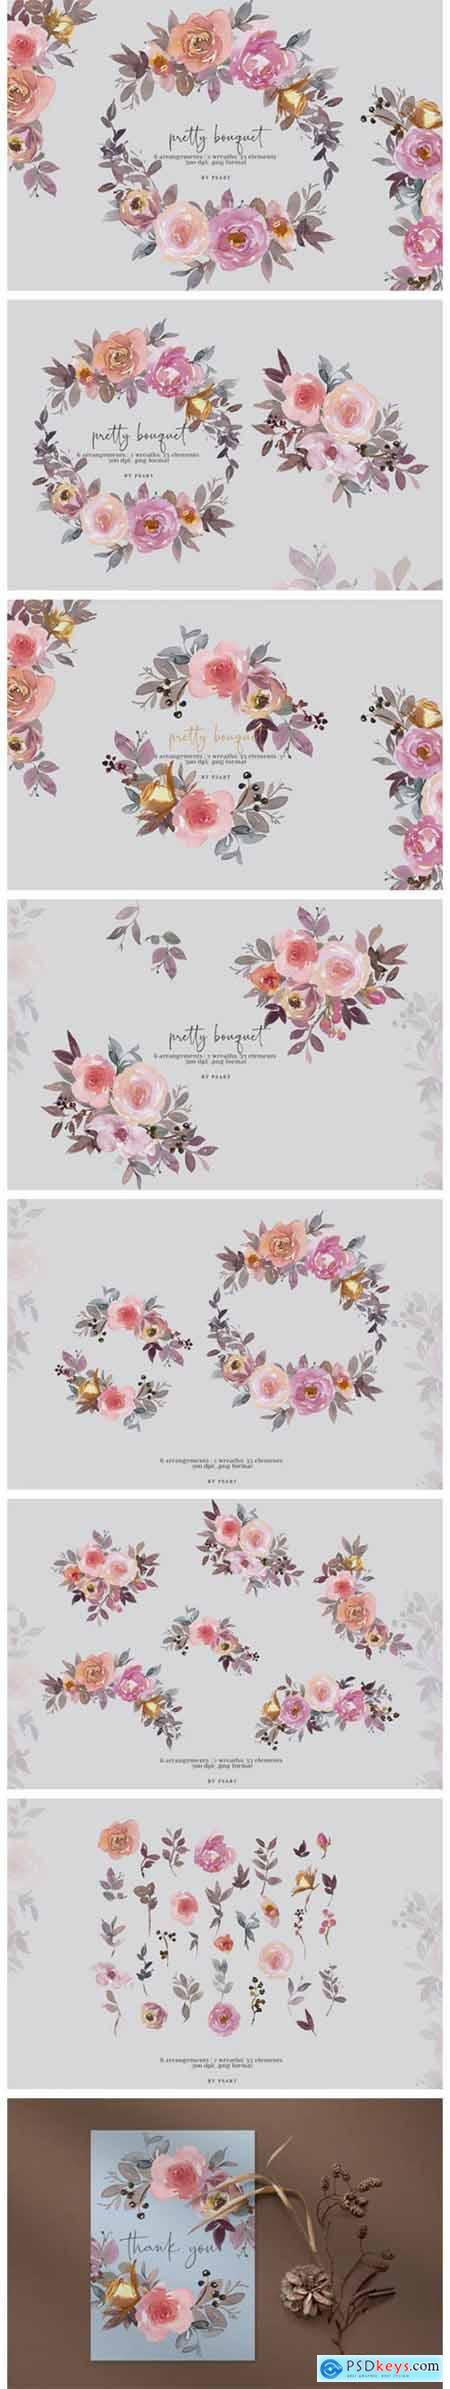 Pretty Bouquet Watercolor Clipart Set 6147792